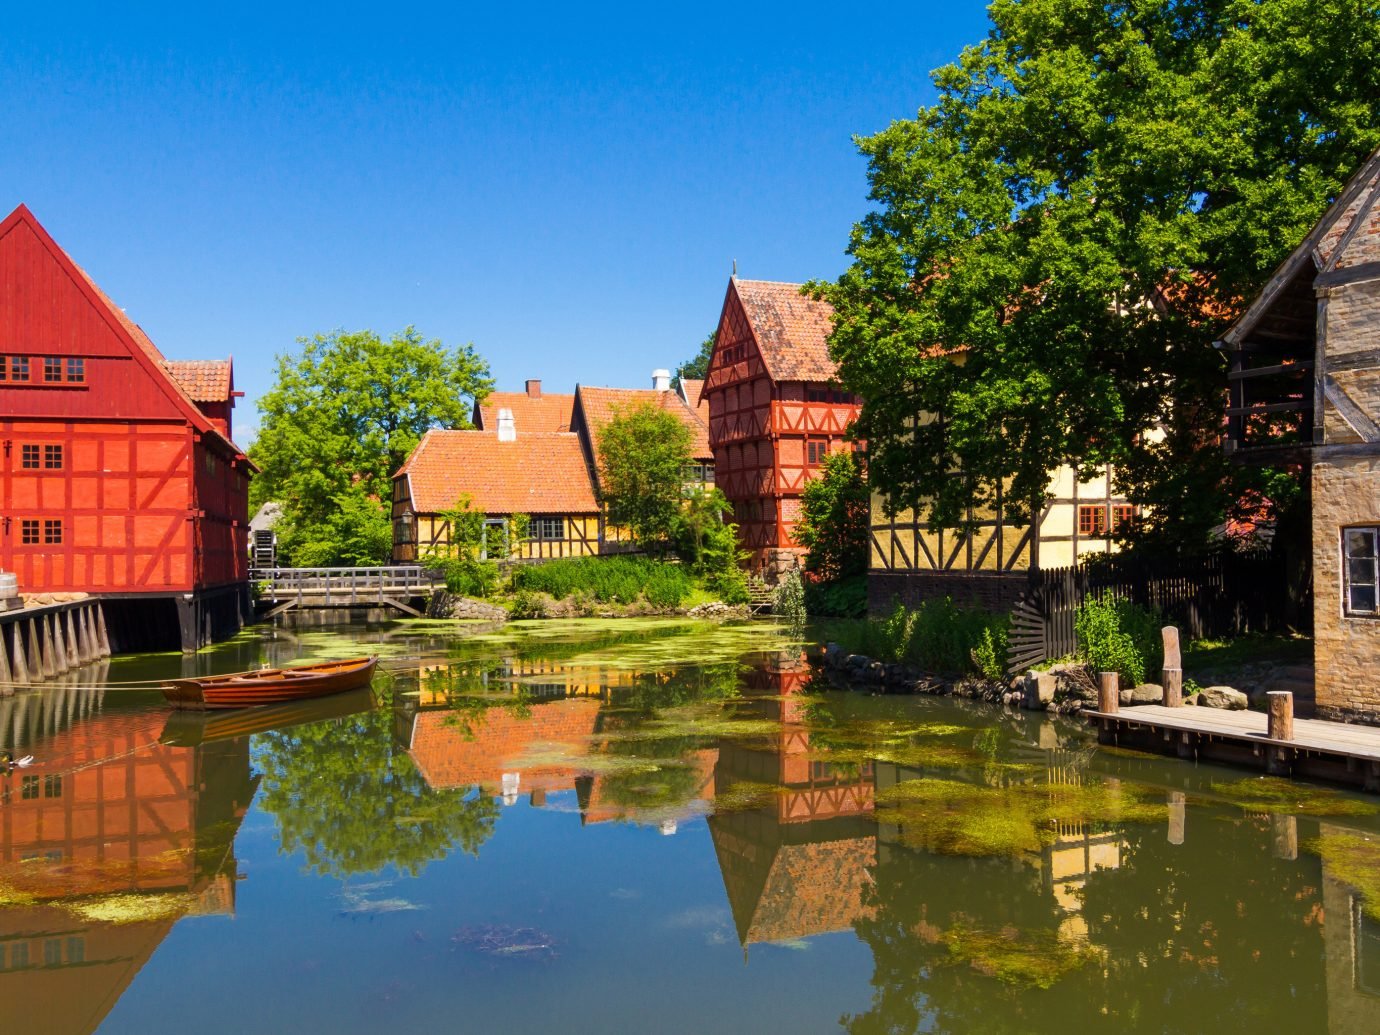 Trip Ideas water building outdoor tree house Town estate reflection tourism River Village waterway rural area autumn château surrounded